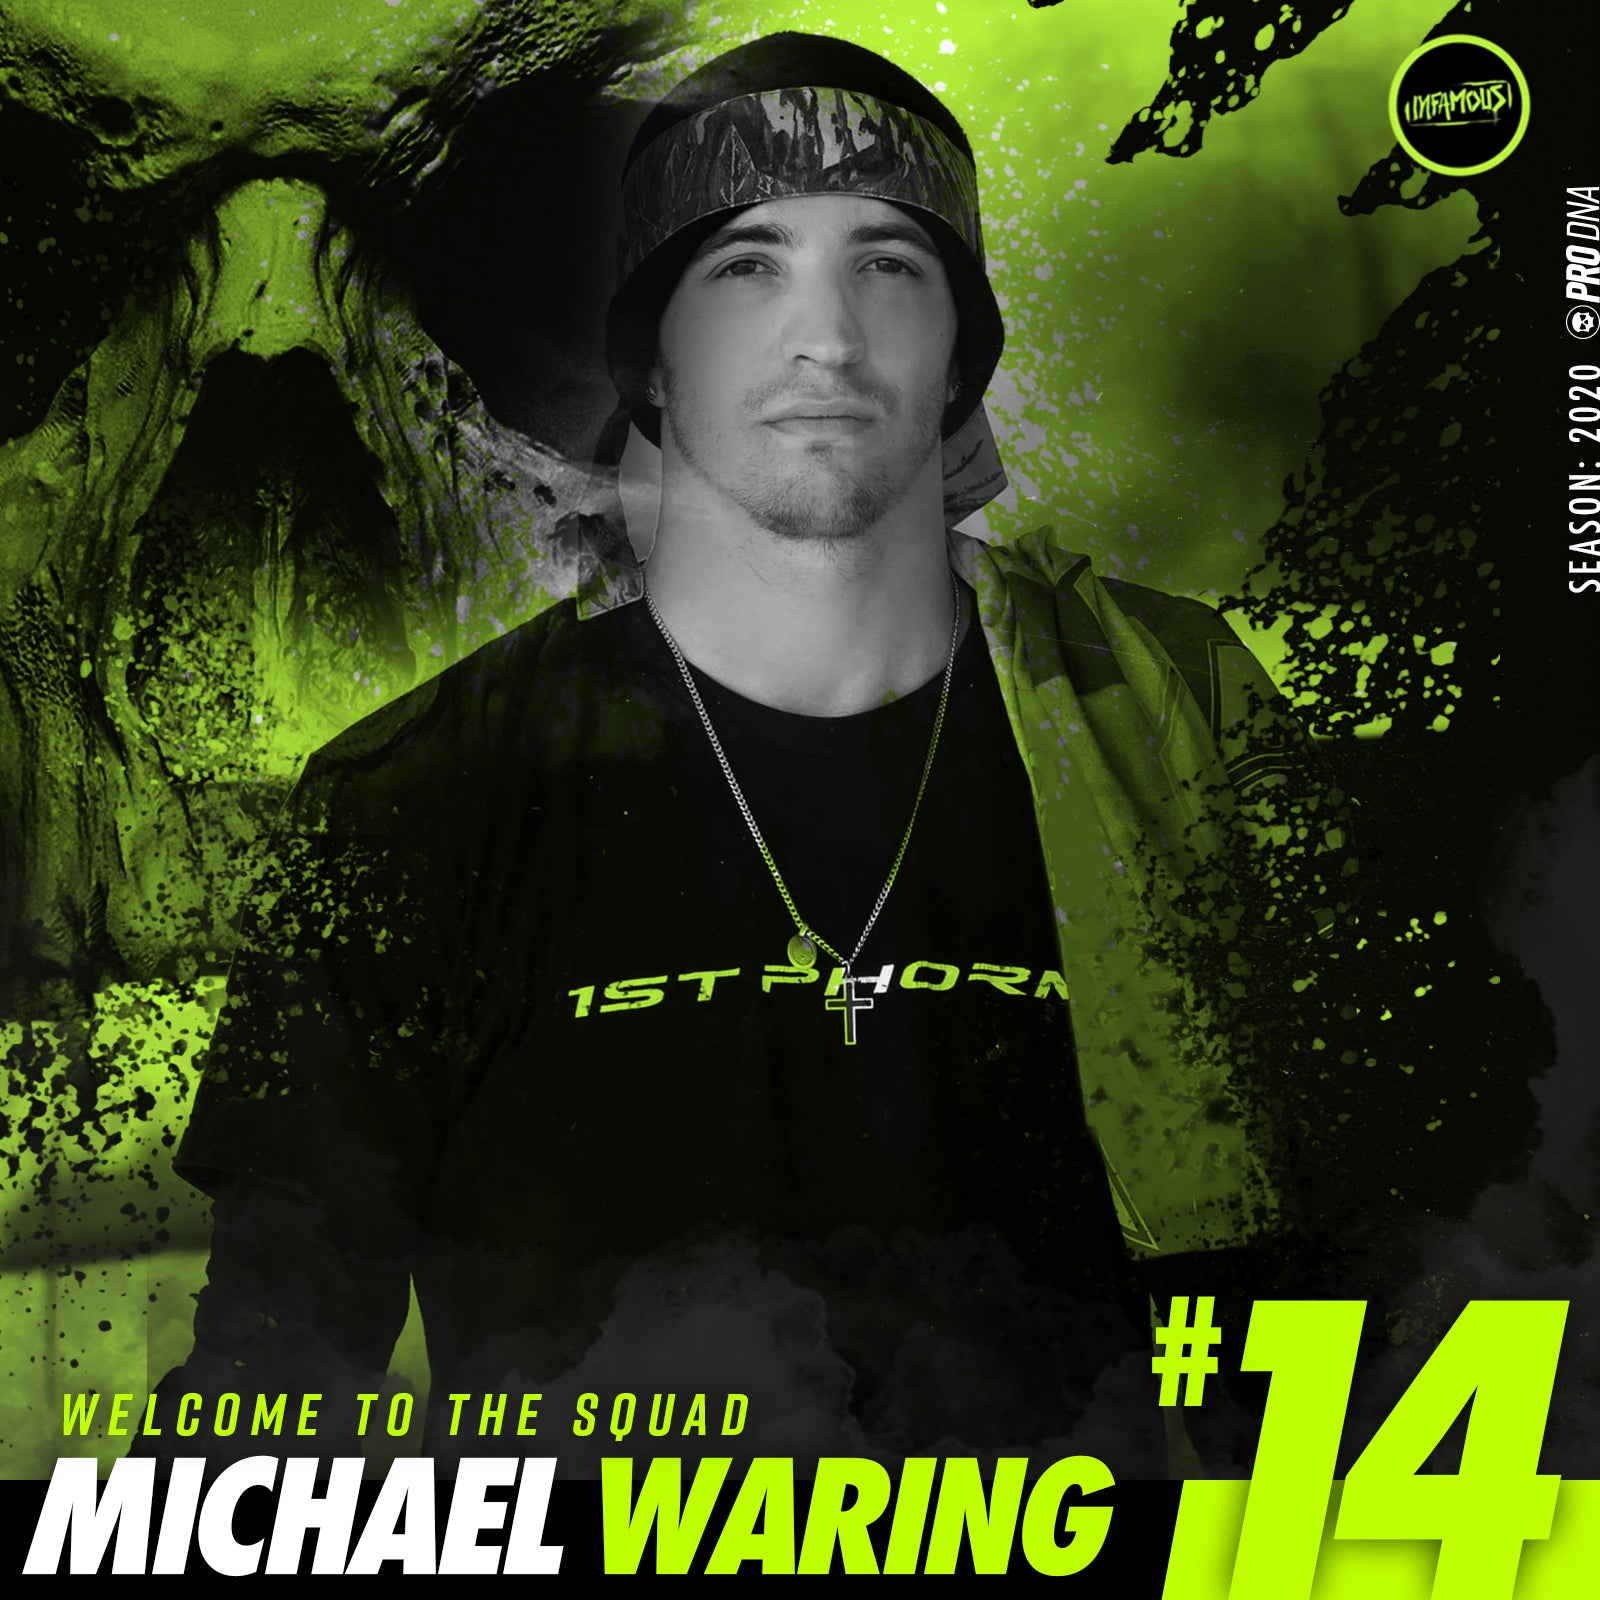 MICHAEL WARING signs with infamous for 2020 season